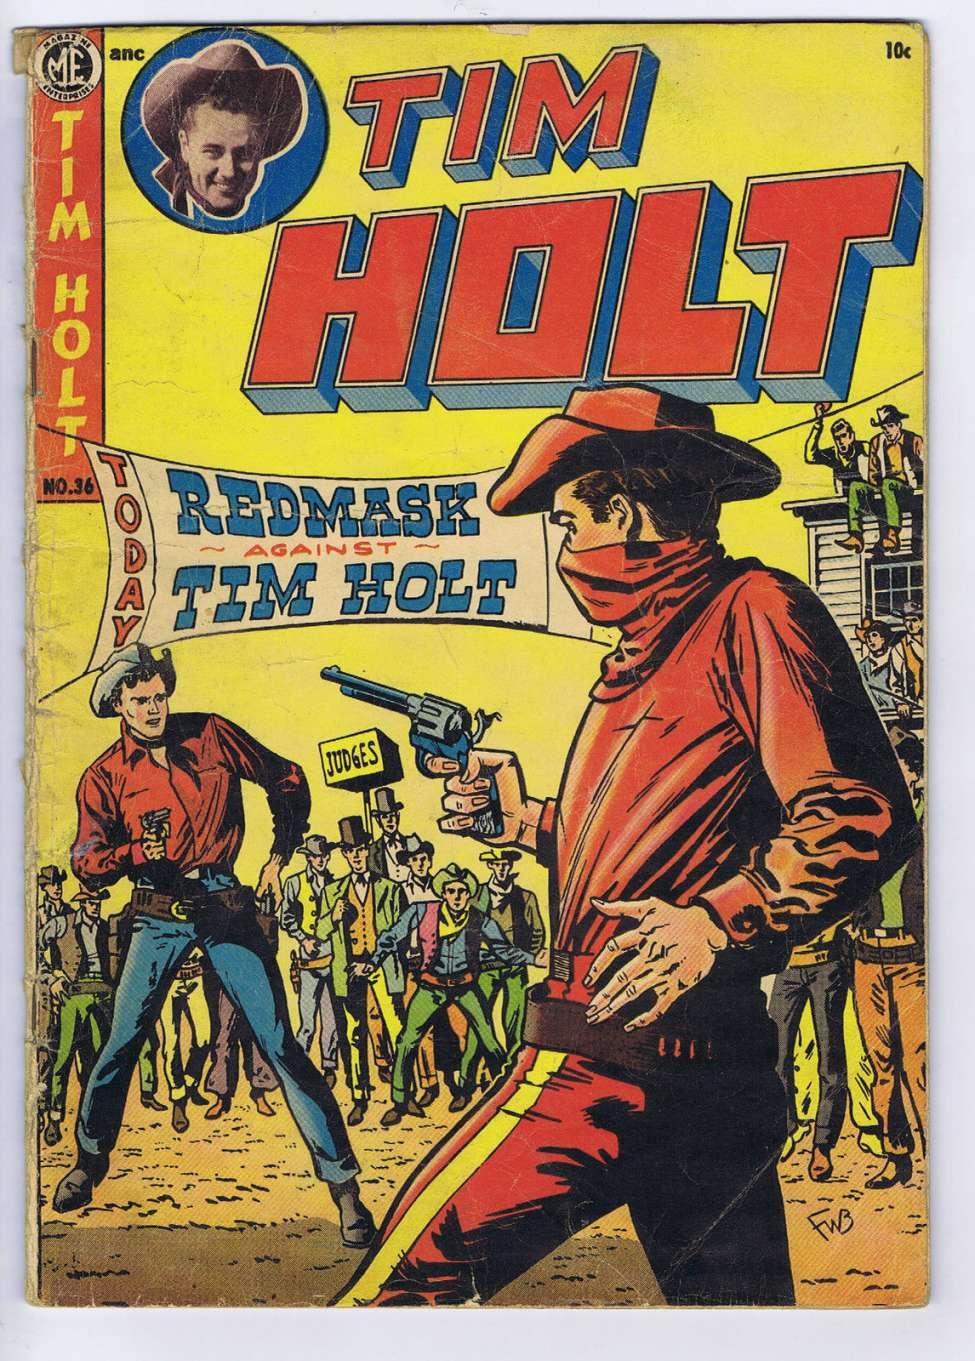 Comic Book Cover For Tim Holt #36 - Version 2